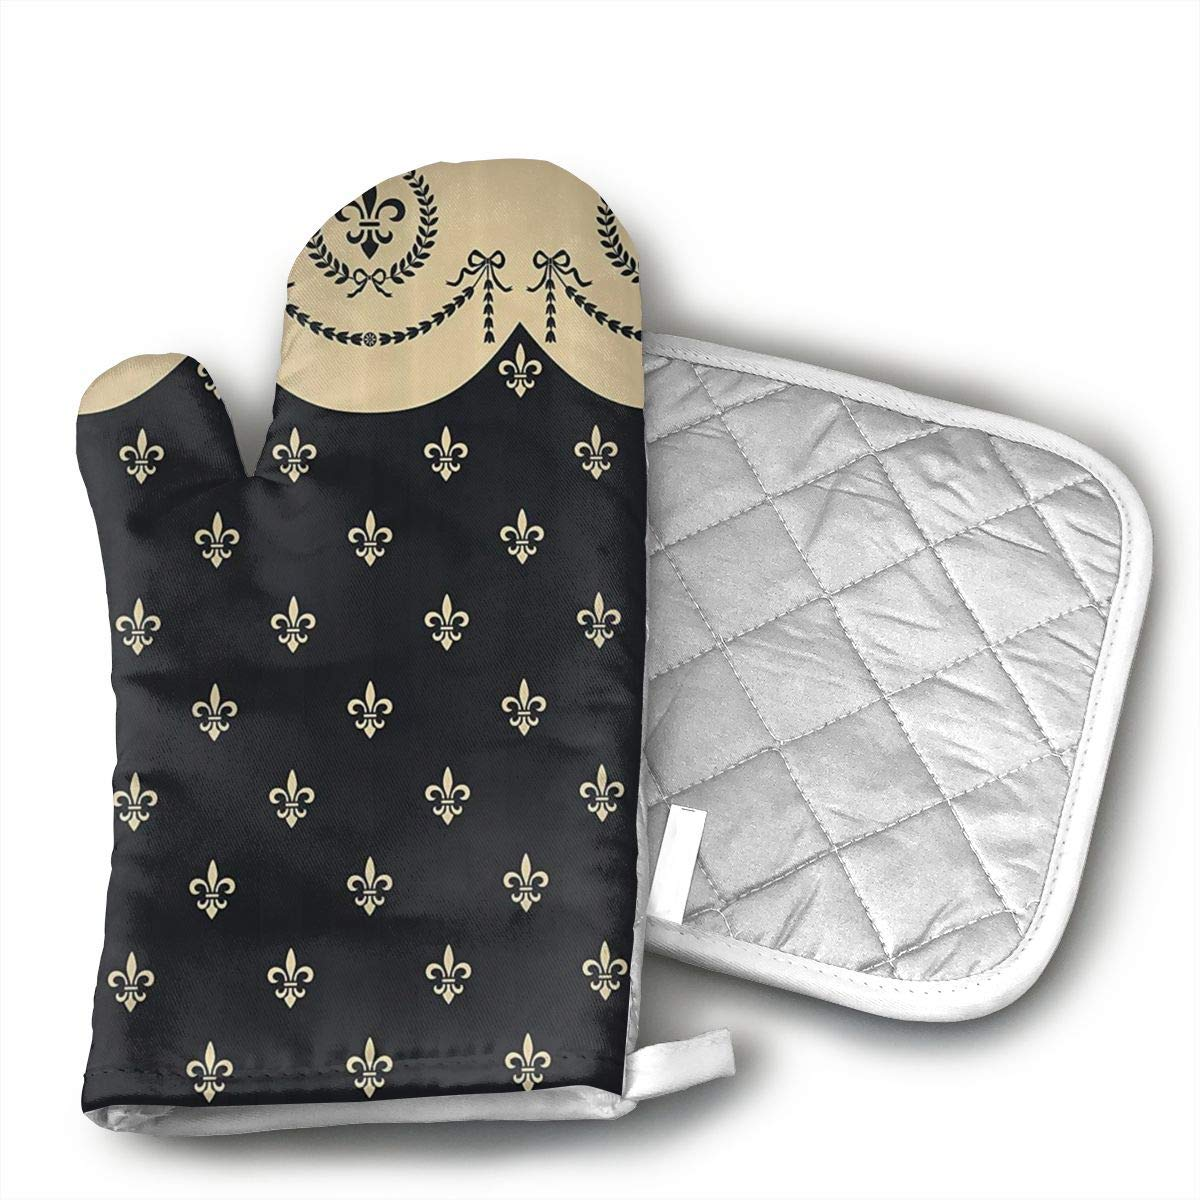 Fleur De Lis Oven Mitts, Heat Resistant Oven Gloves and Pot Holders, Soft Cotton Lining with Non-Slip Surface for Safe BBQ Cooking Baking Grilling